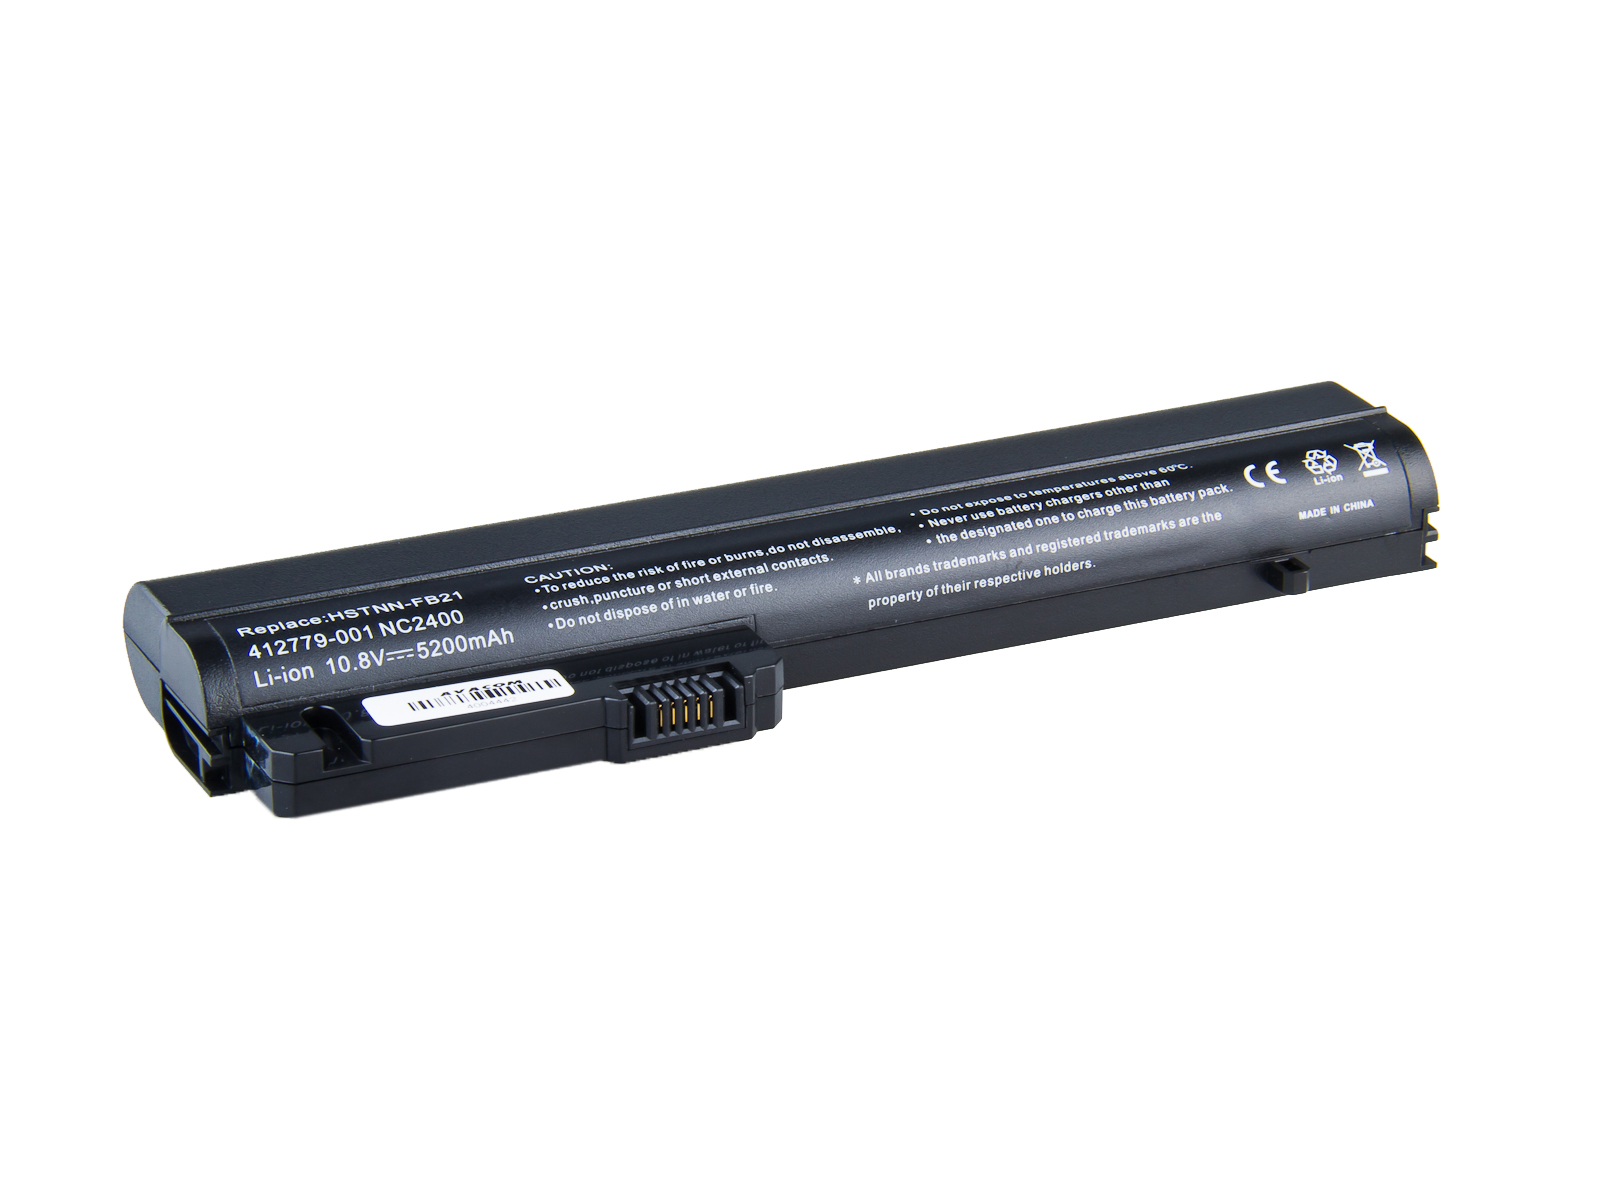 Baterie AVACOM NOHP-240h-S26 pro HP Business Notebook 2400, nc2400, 2510p Li-Ion 10,8V 5200mAh